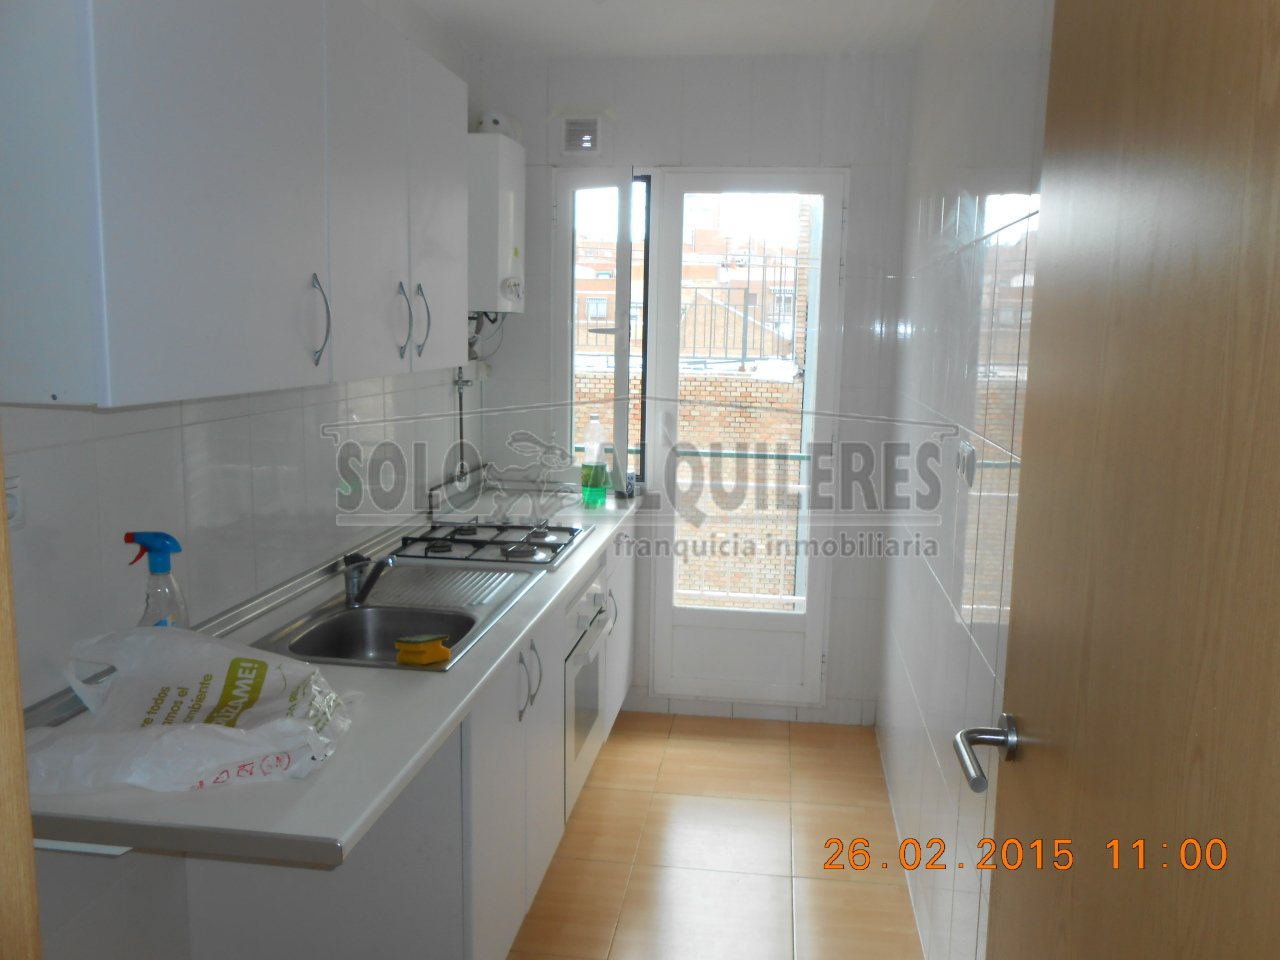 flat-for-rent-in-cañaveral-madrid